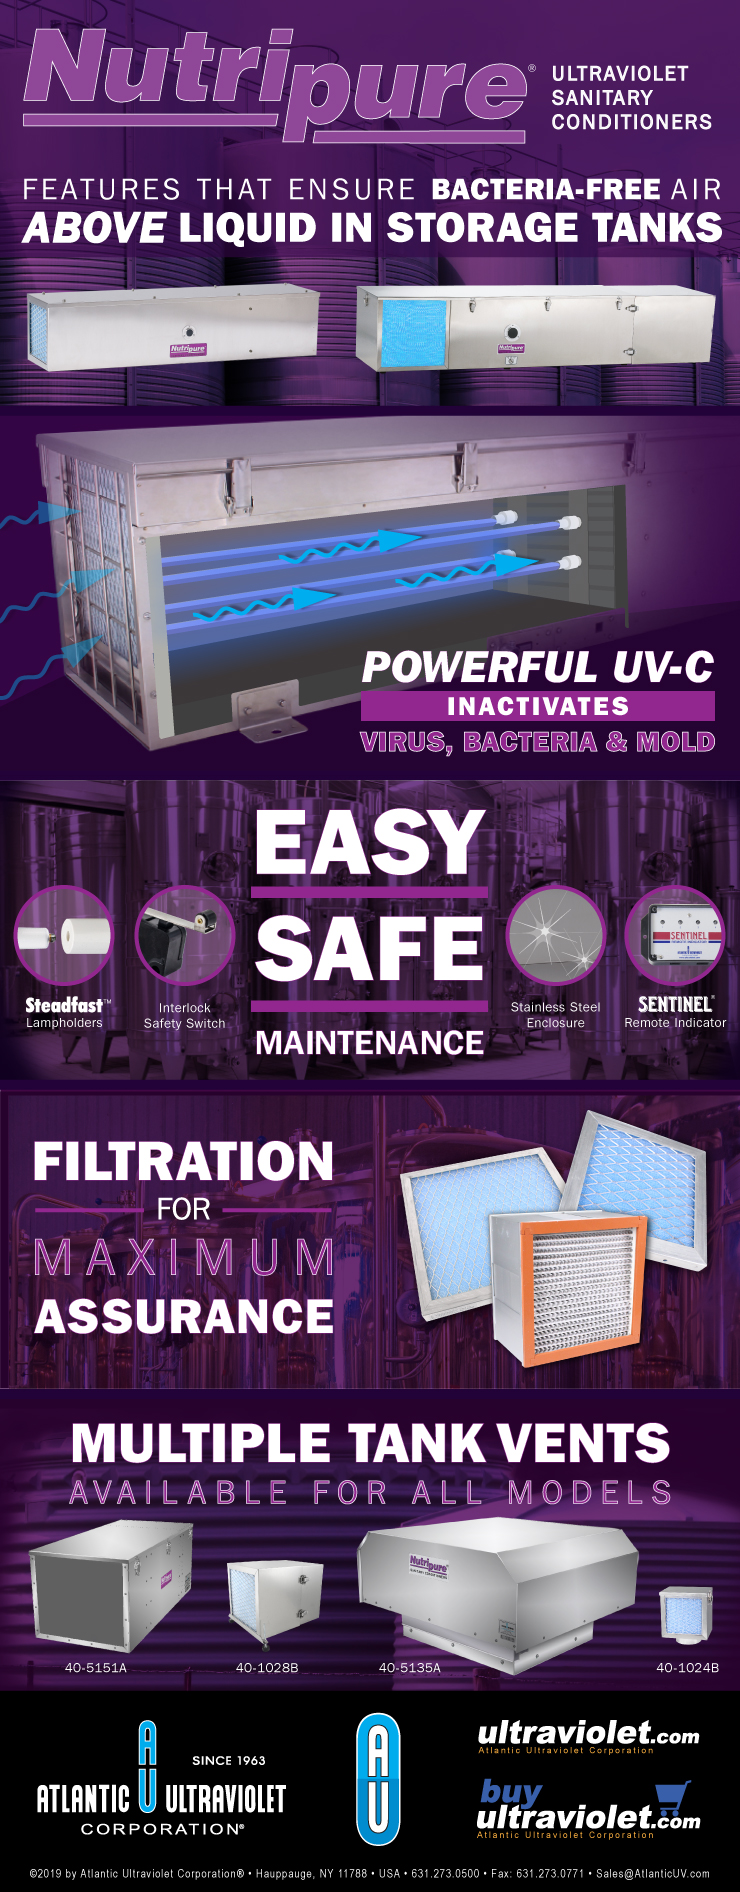 Nutripure UV-C Sanitary Conditioners – Features That Ensure Bacteria-Free Air Above Liquid in Storage Tanks